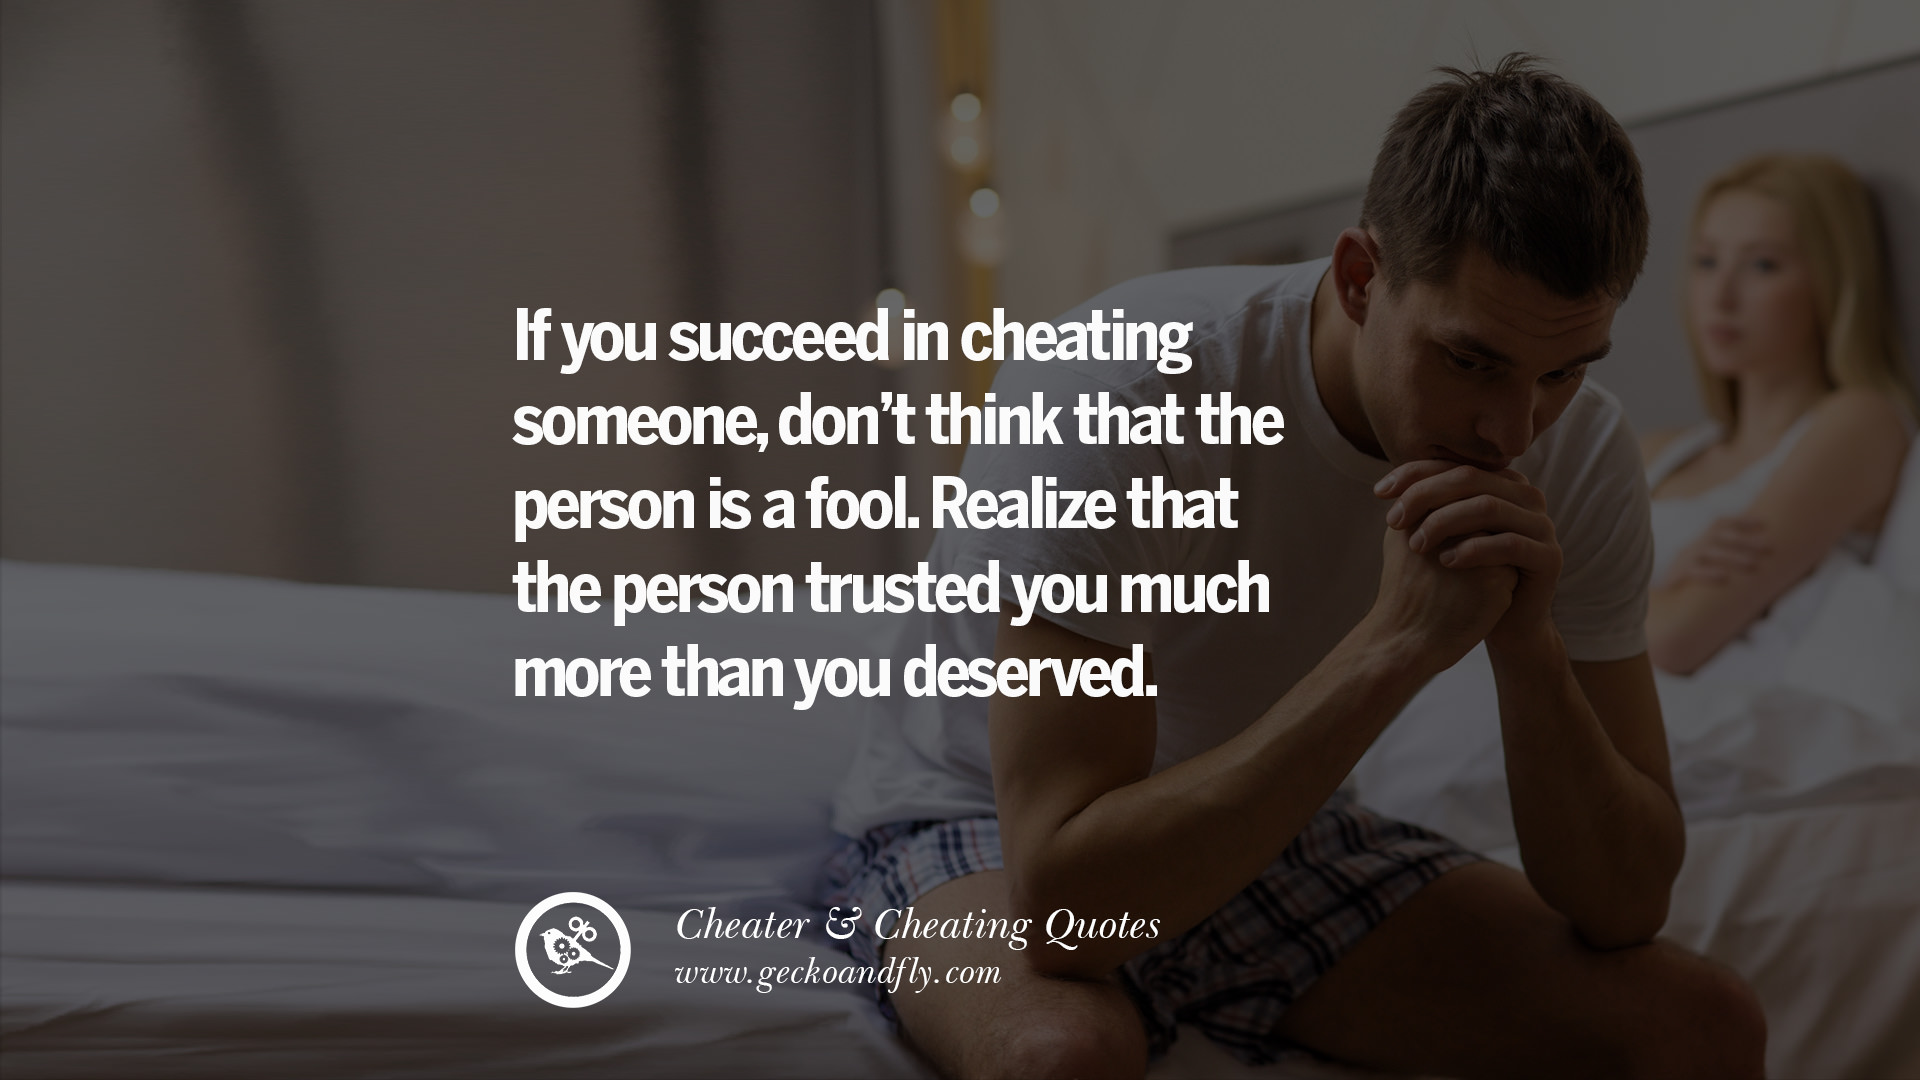 Your man is cheating on you